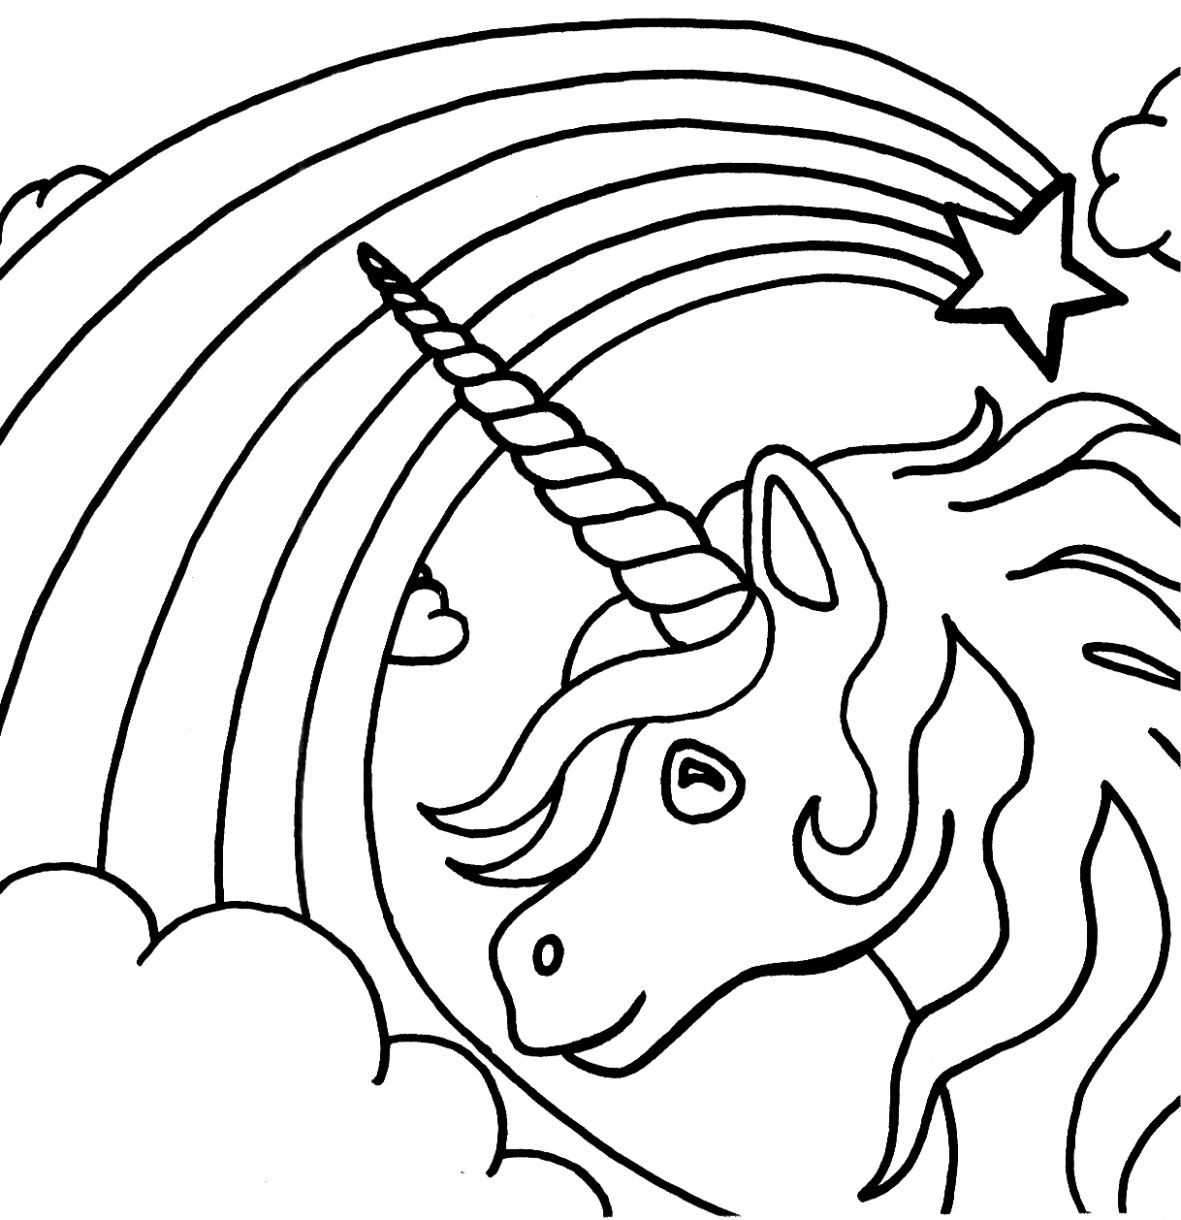 Why Is Unicorn Coloring Pages Printable So Famous Coloring Unicorn Coloring Pages Emoji Coloring Pages Easy Coloring Pages